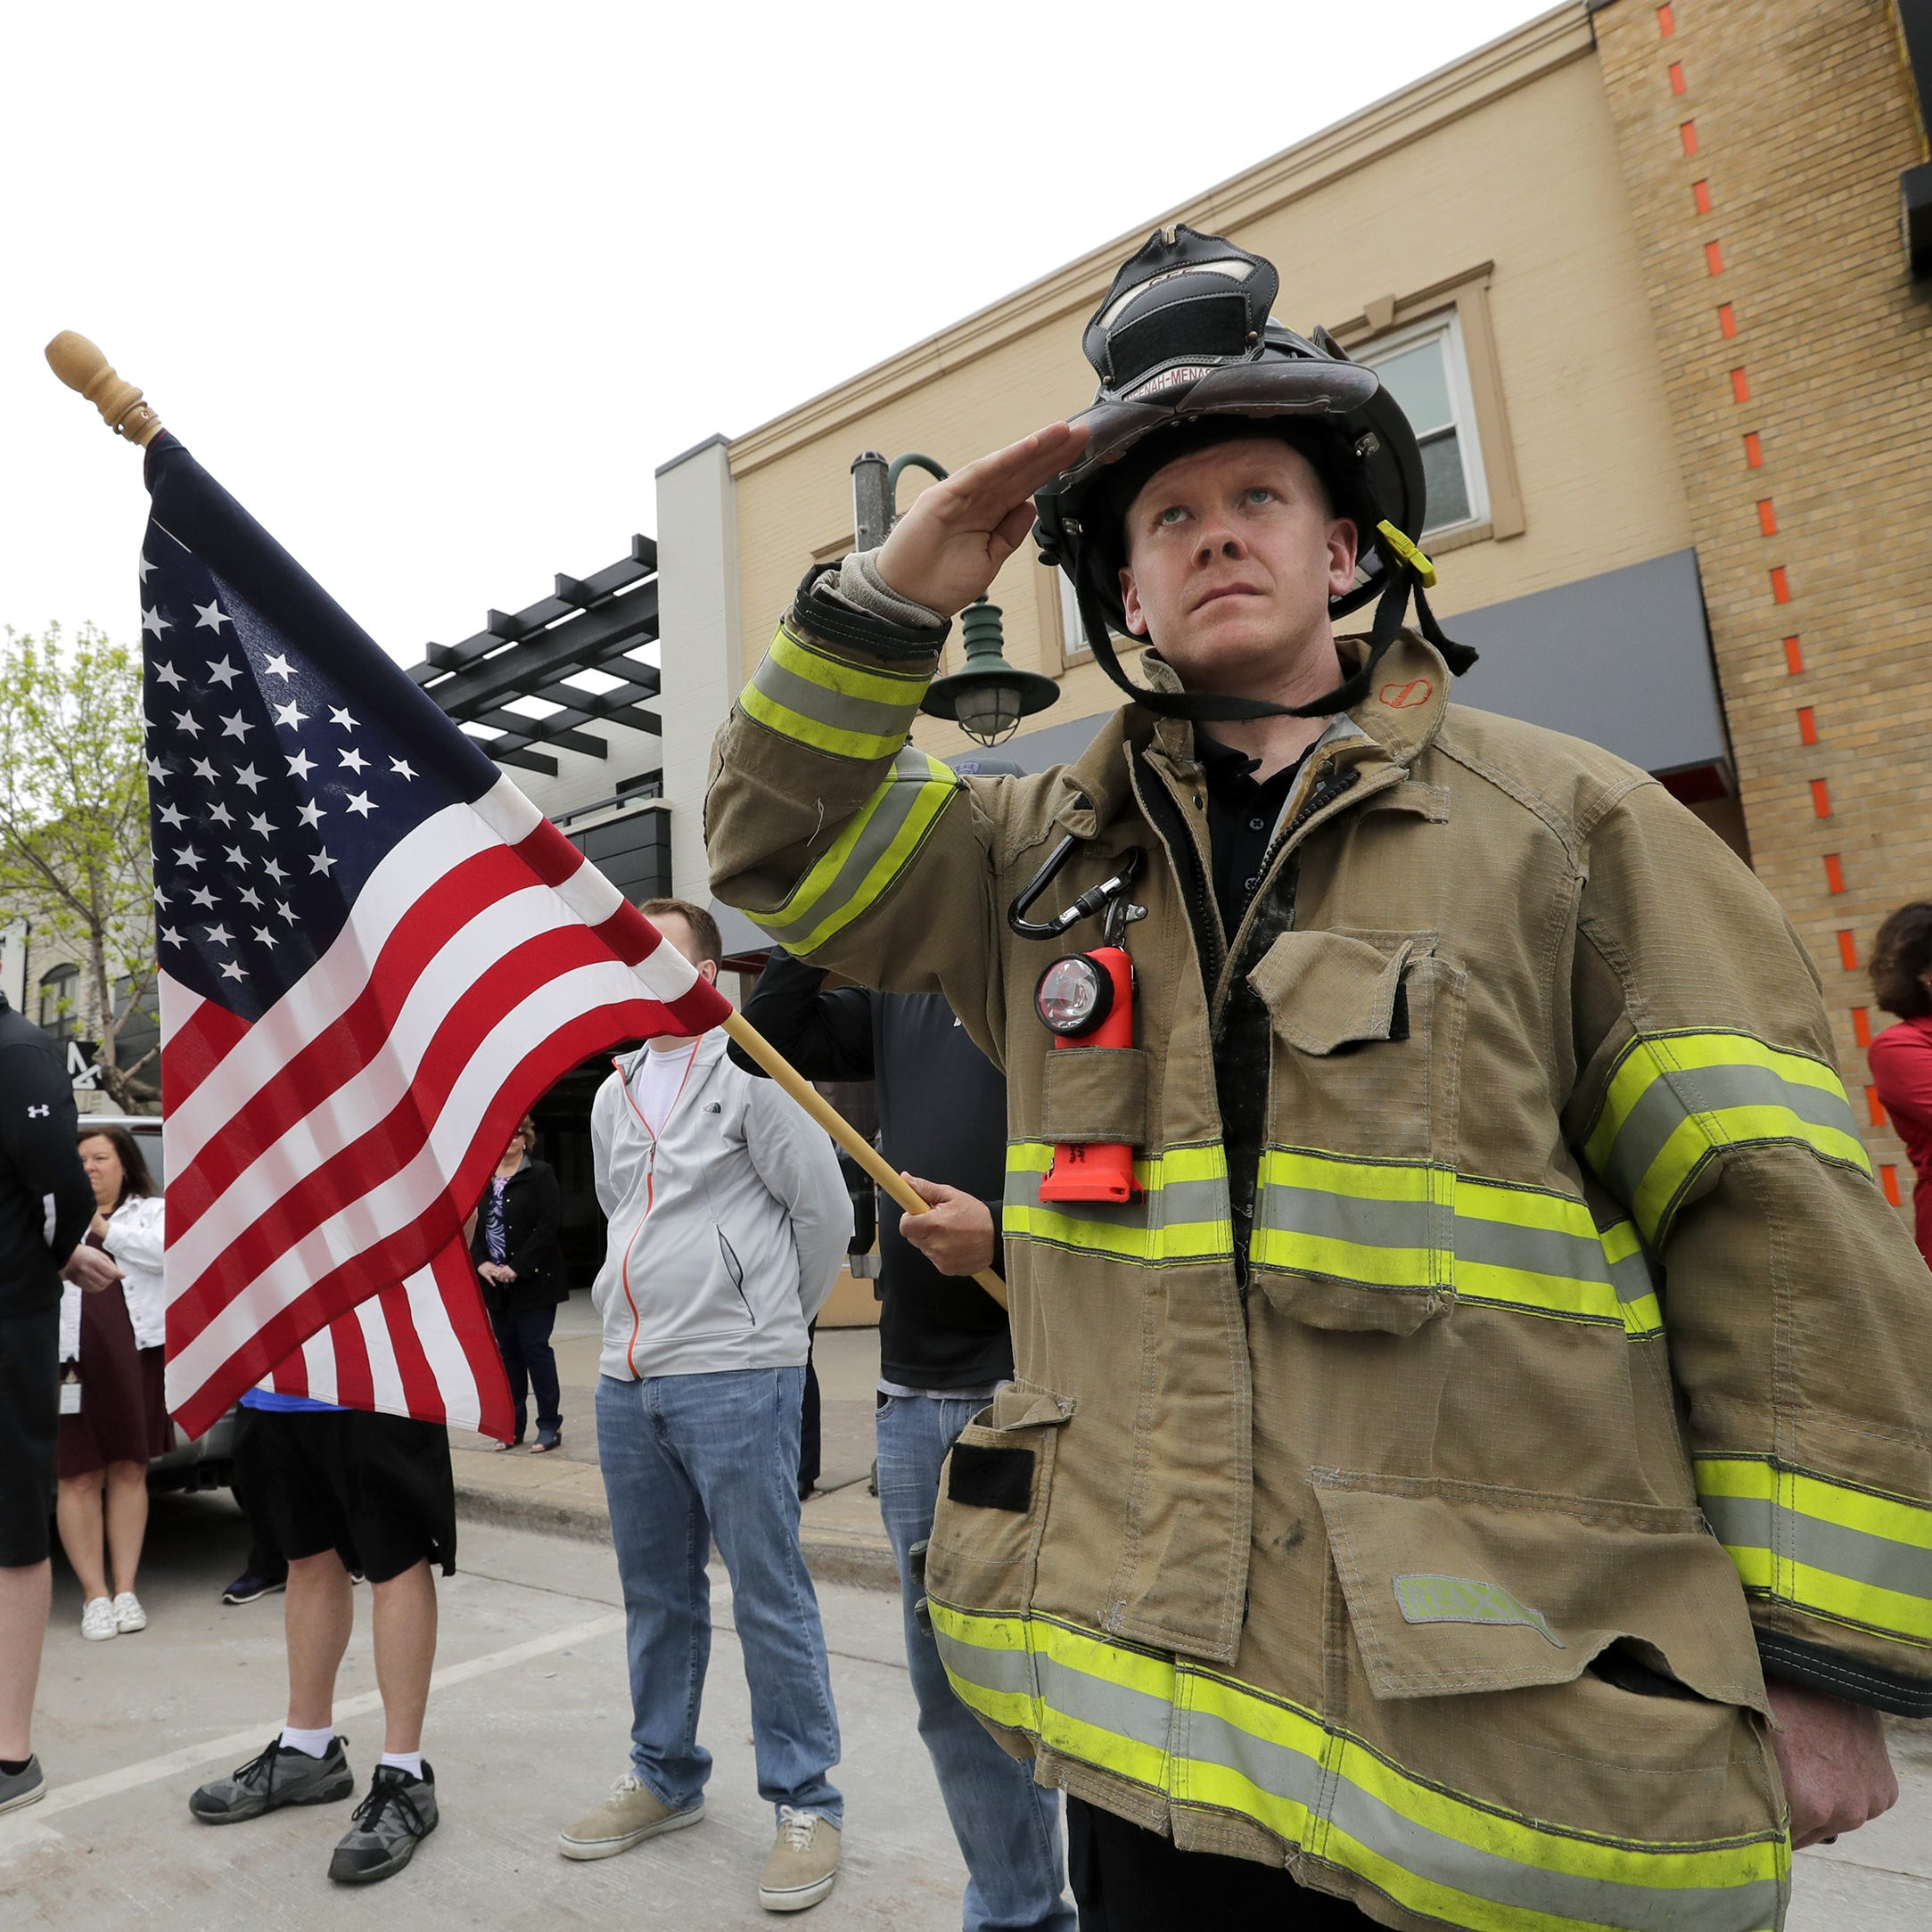 REPLAY: Funeral procession in Appleton for firefighter killed in shooting at Valley Transit